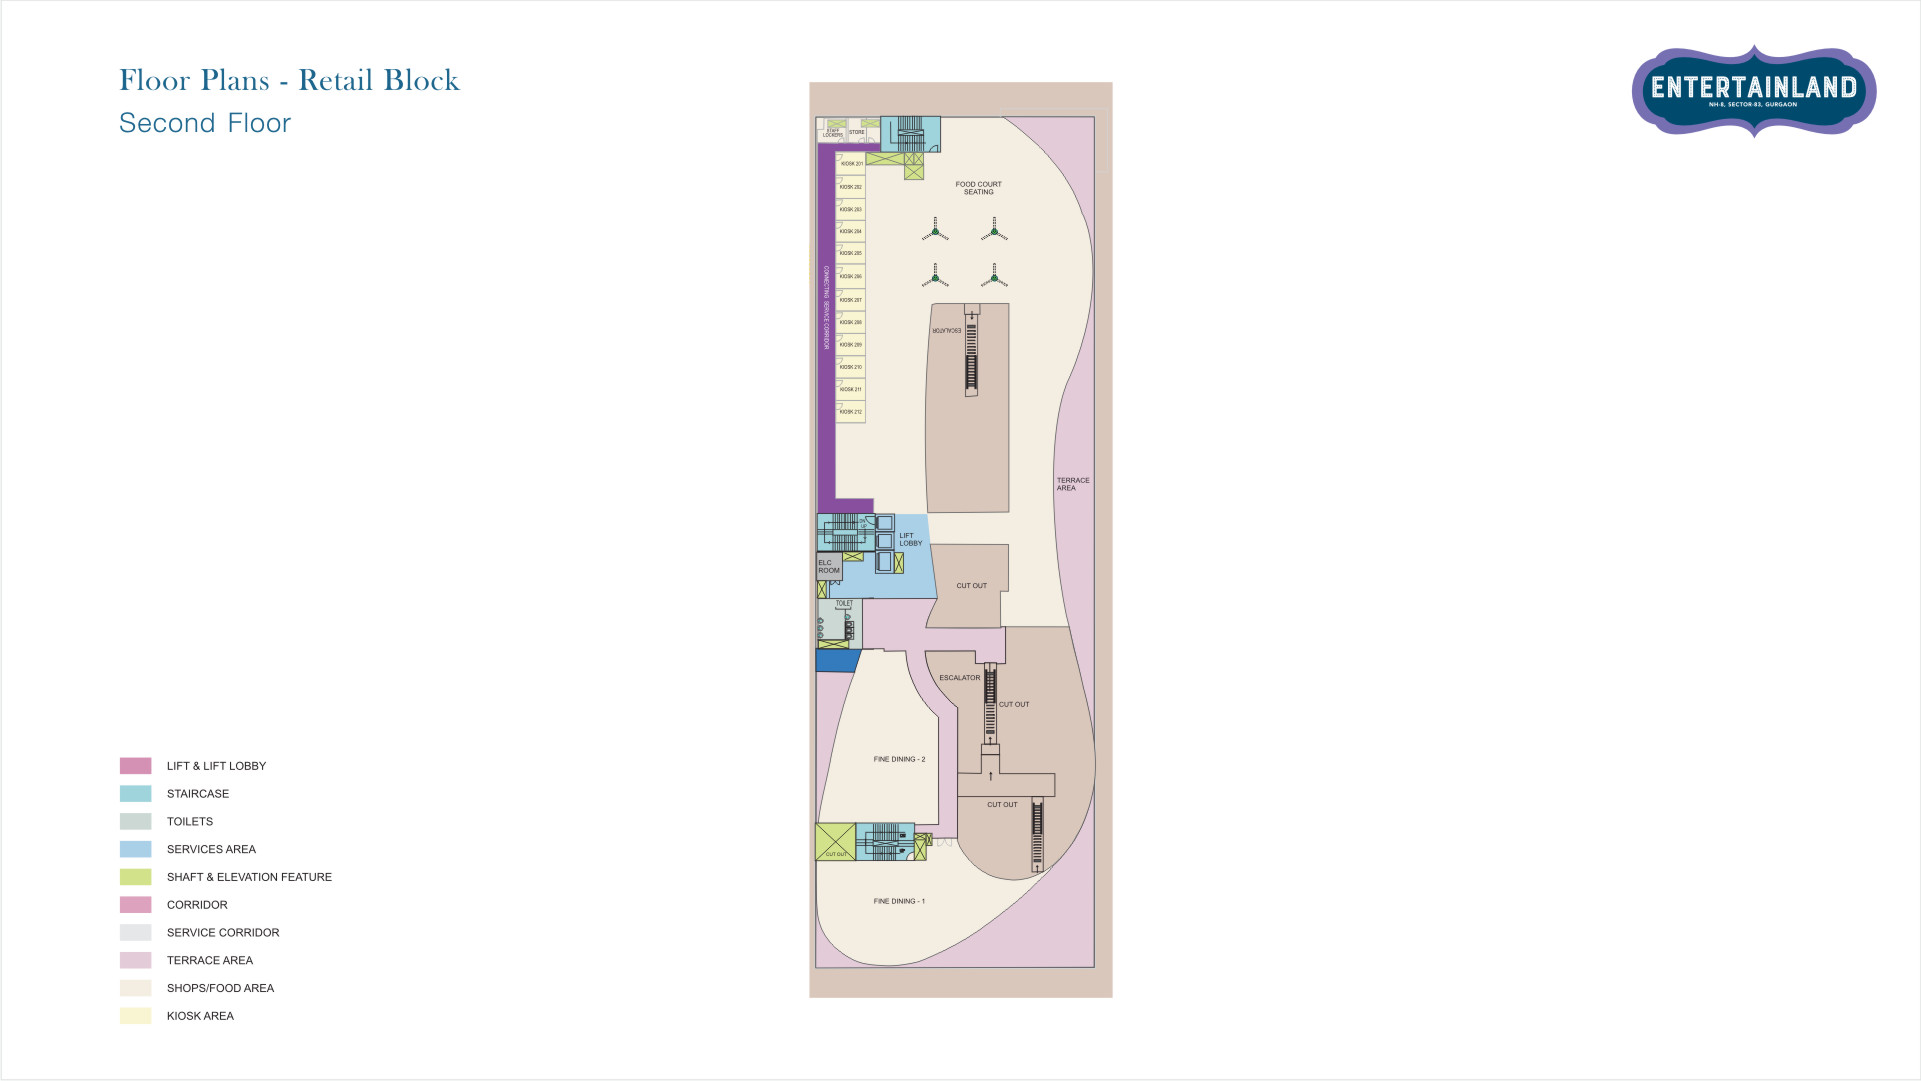 Entertainland Floor Plan 3